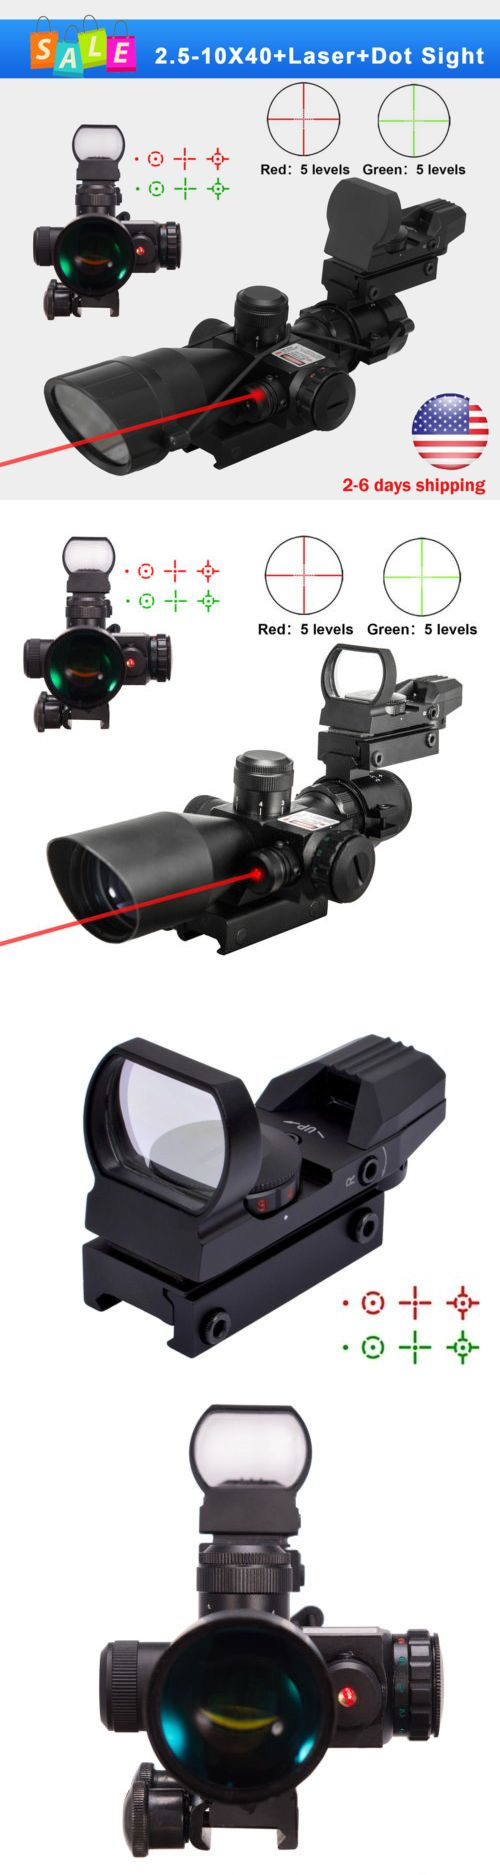 Red Dot and Laser Scopes 66827: 2.5-10X40 Tactical Rifle Scope W Red Laser Mini Reflex 3 Moa Green Red Dot Sight -> BUY IT NOW ONLY: $53.89 on eBay!